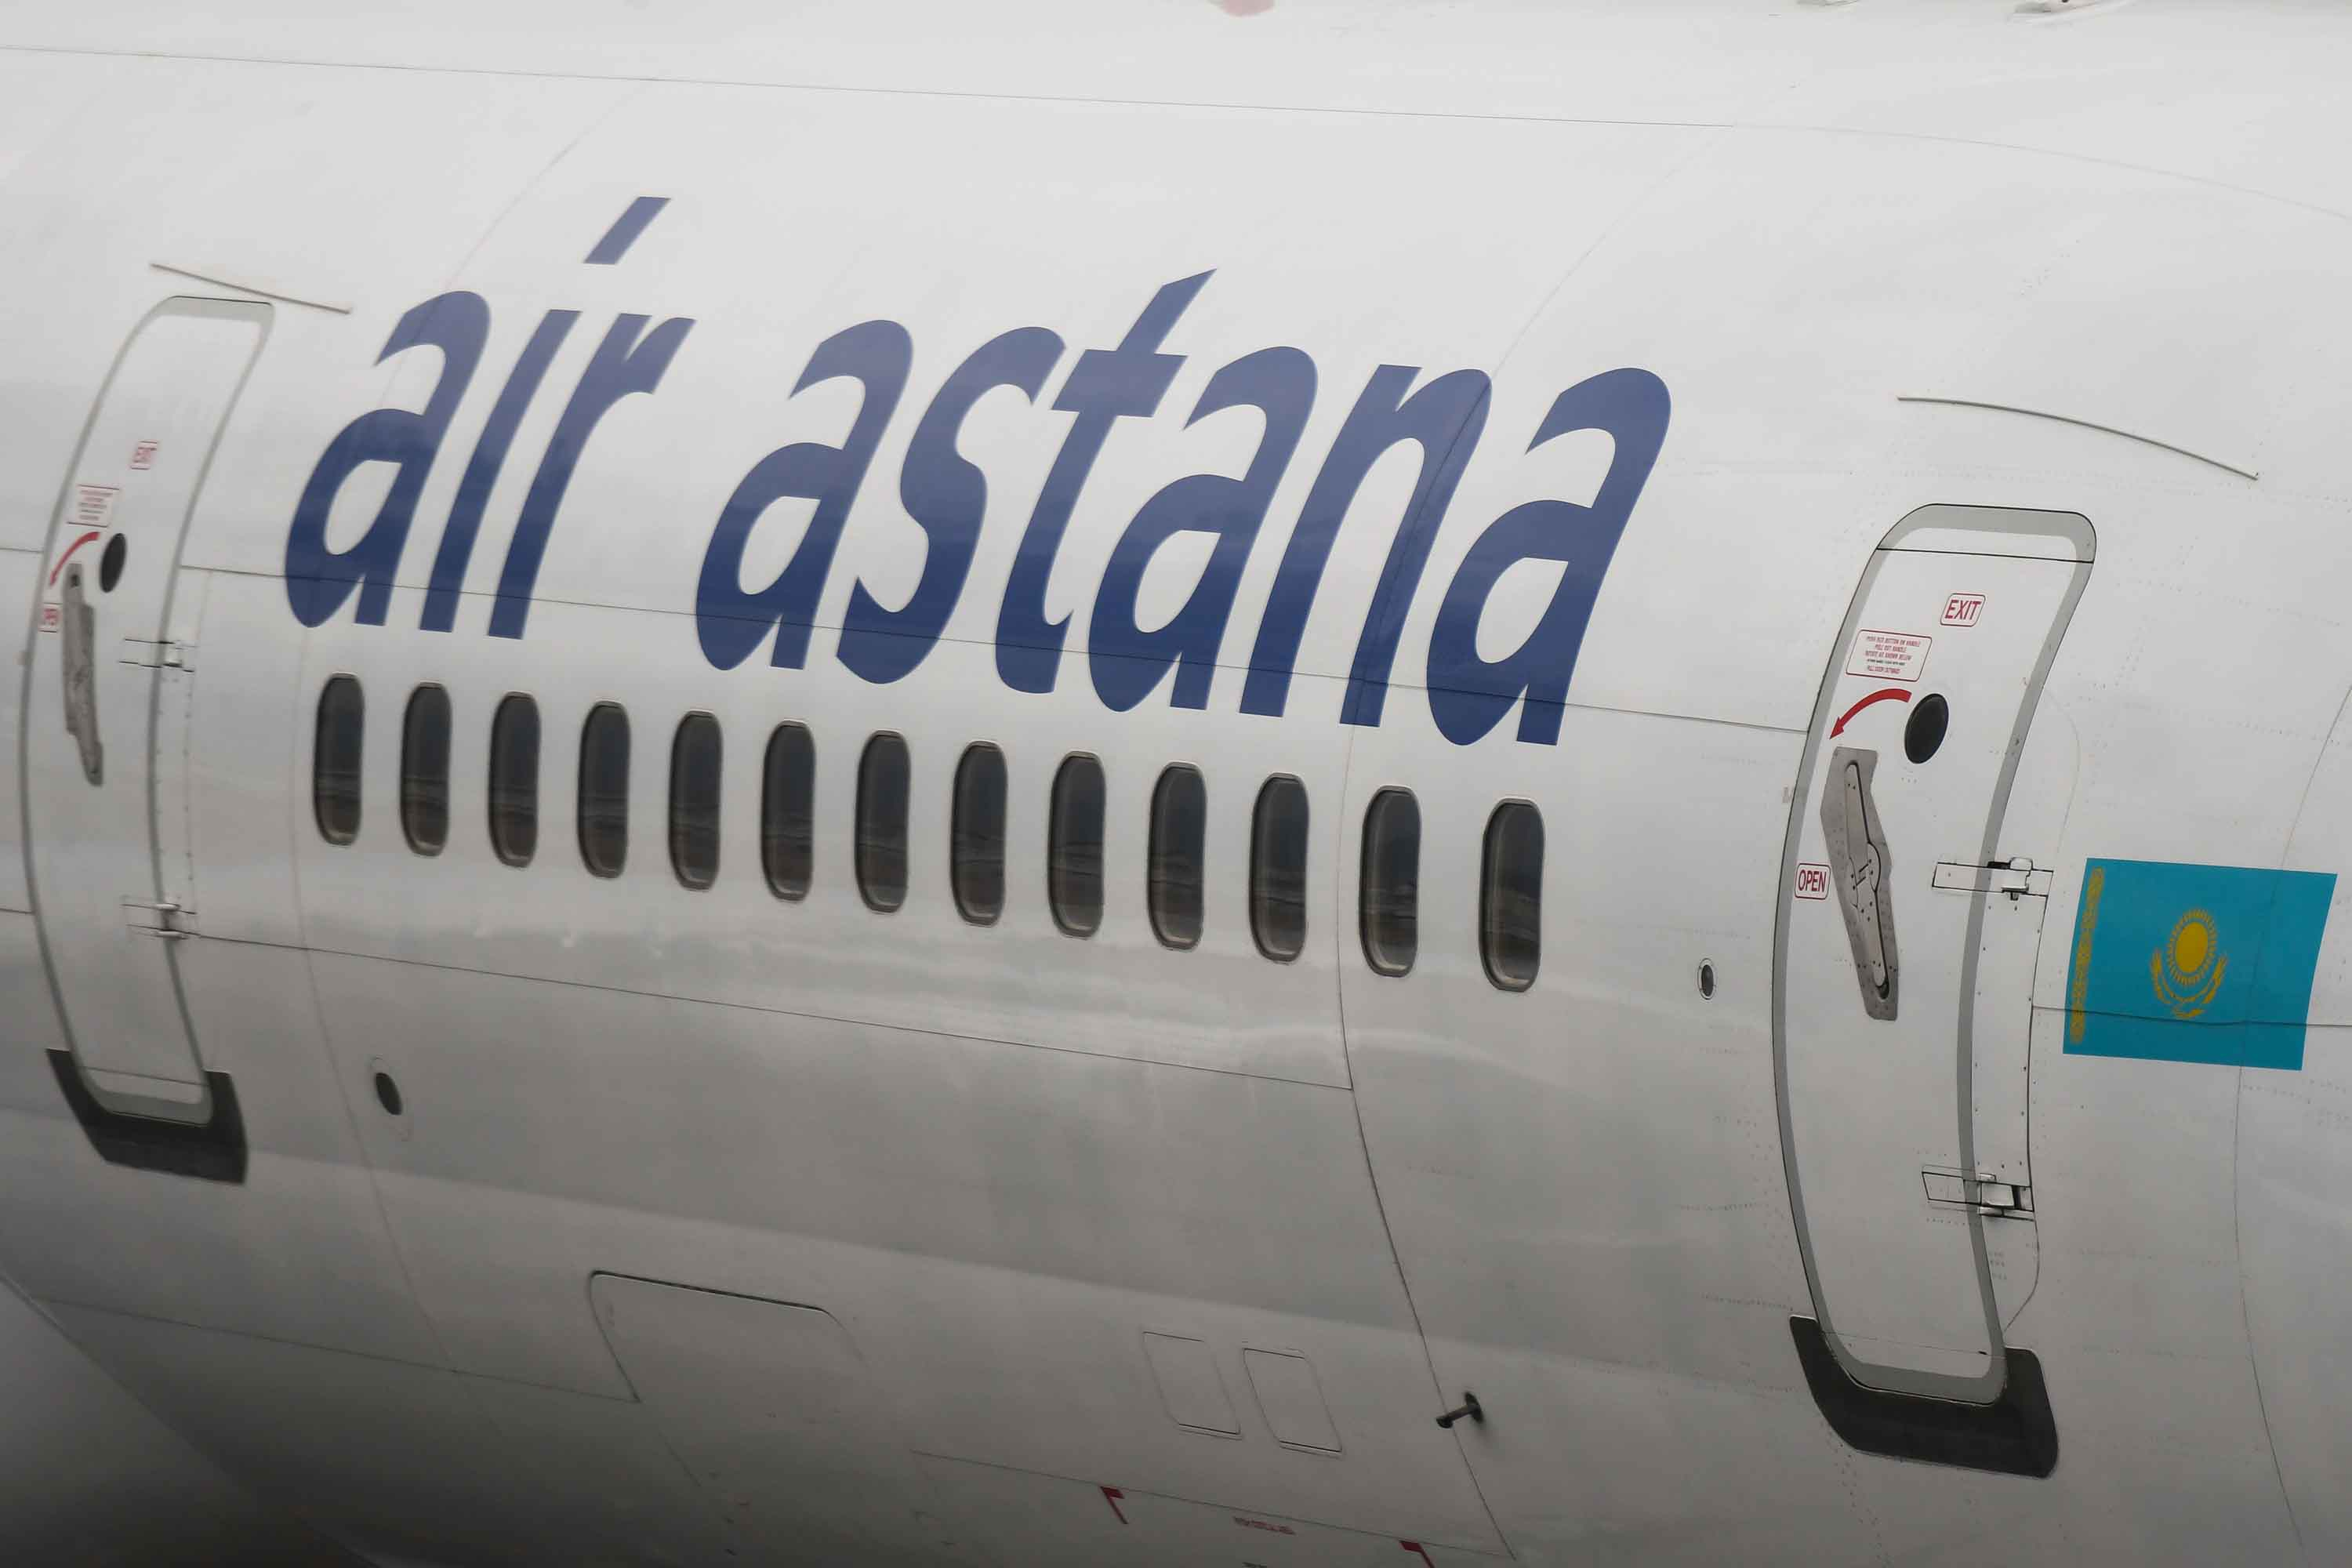 A plane belonging to Air Astana, the flag carrier of the Republic of Kazakhstan, is seen parked in Hong Kong International Airport in June 2019.